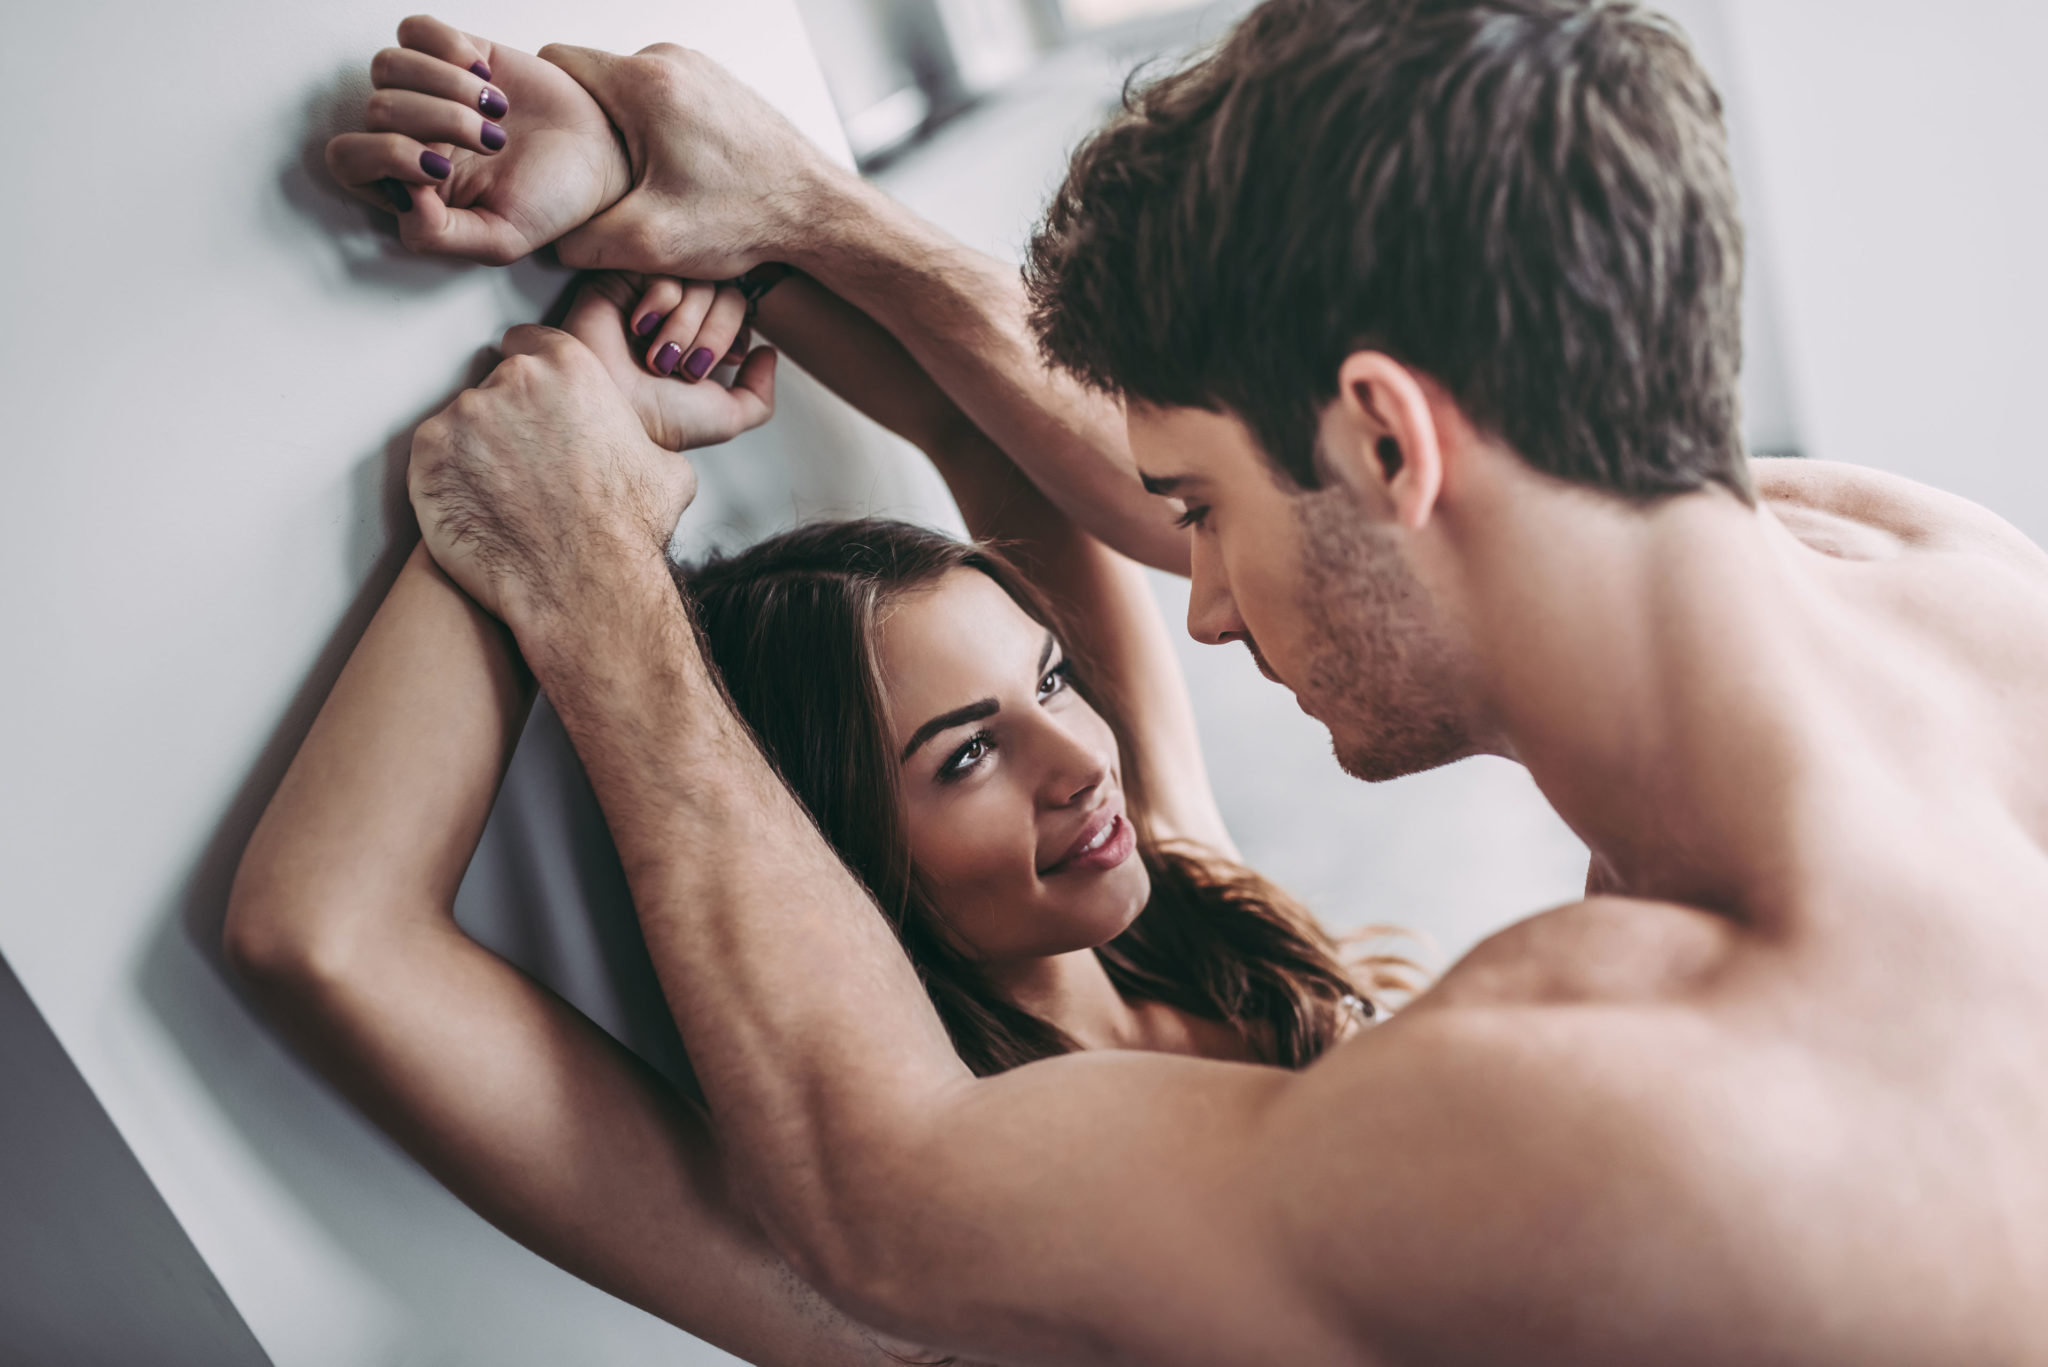 Getting the right partner